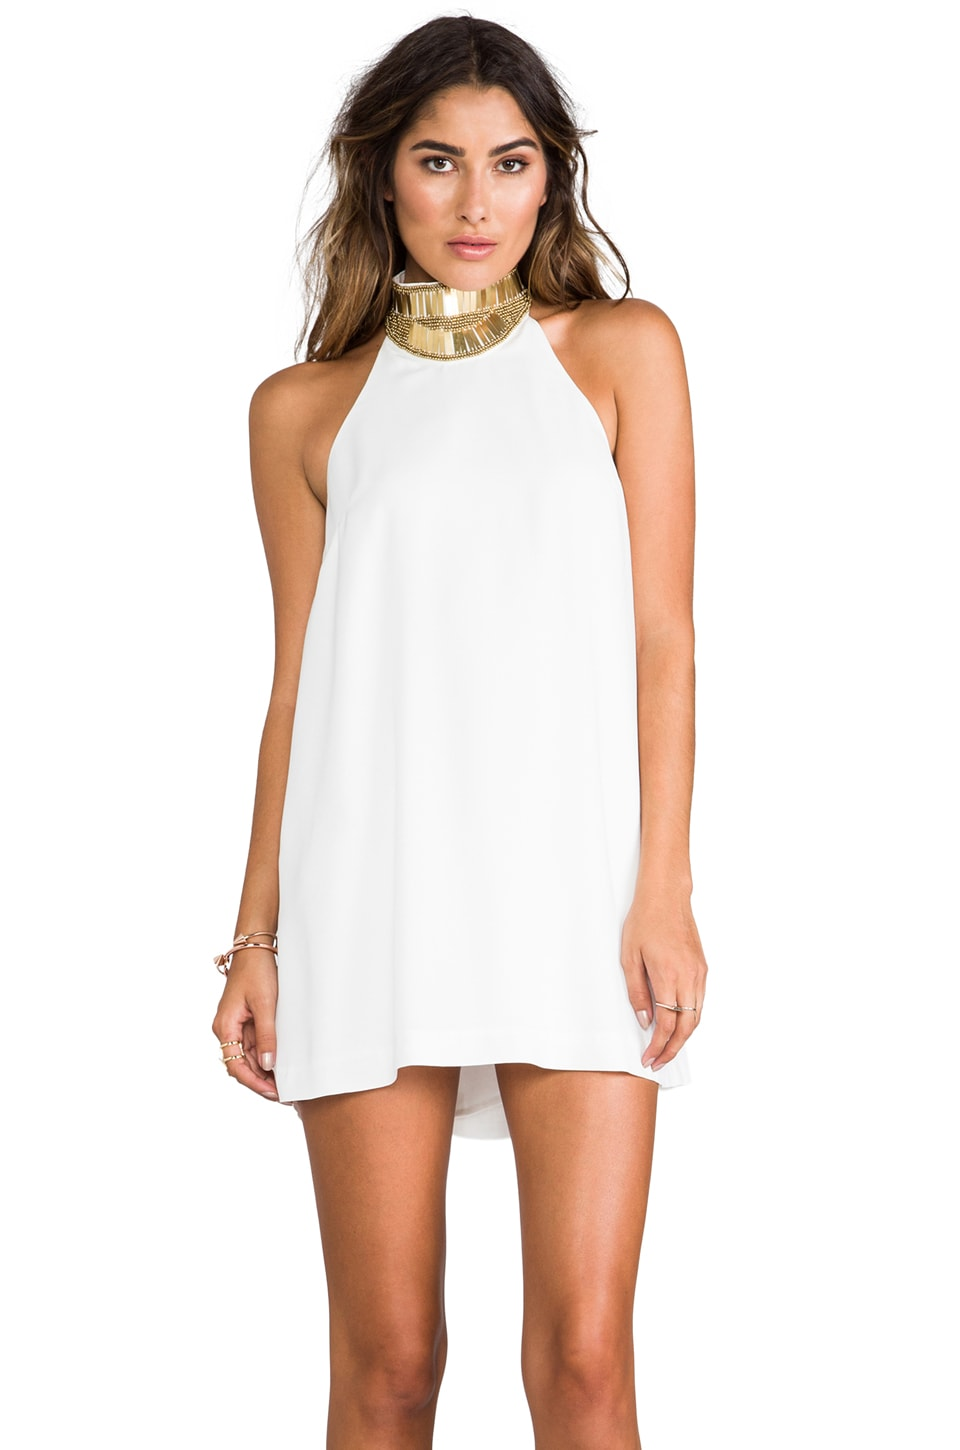 keepsake Modern Myth Mini Dress in Ivory/Gold